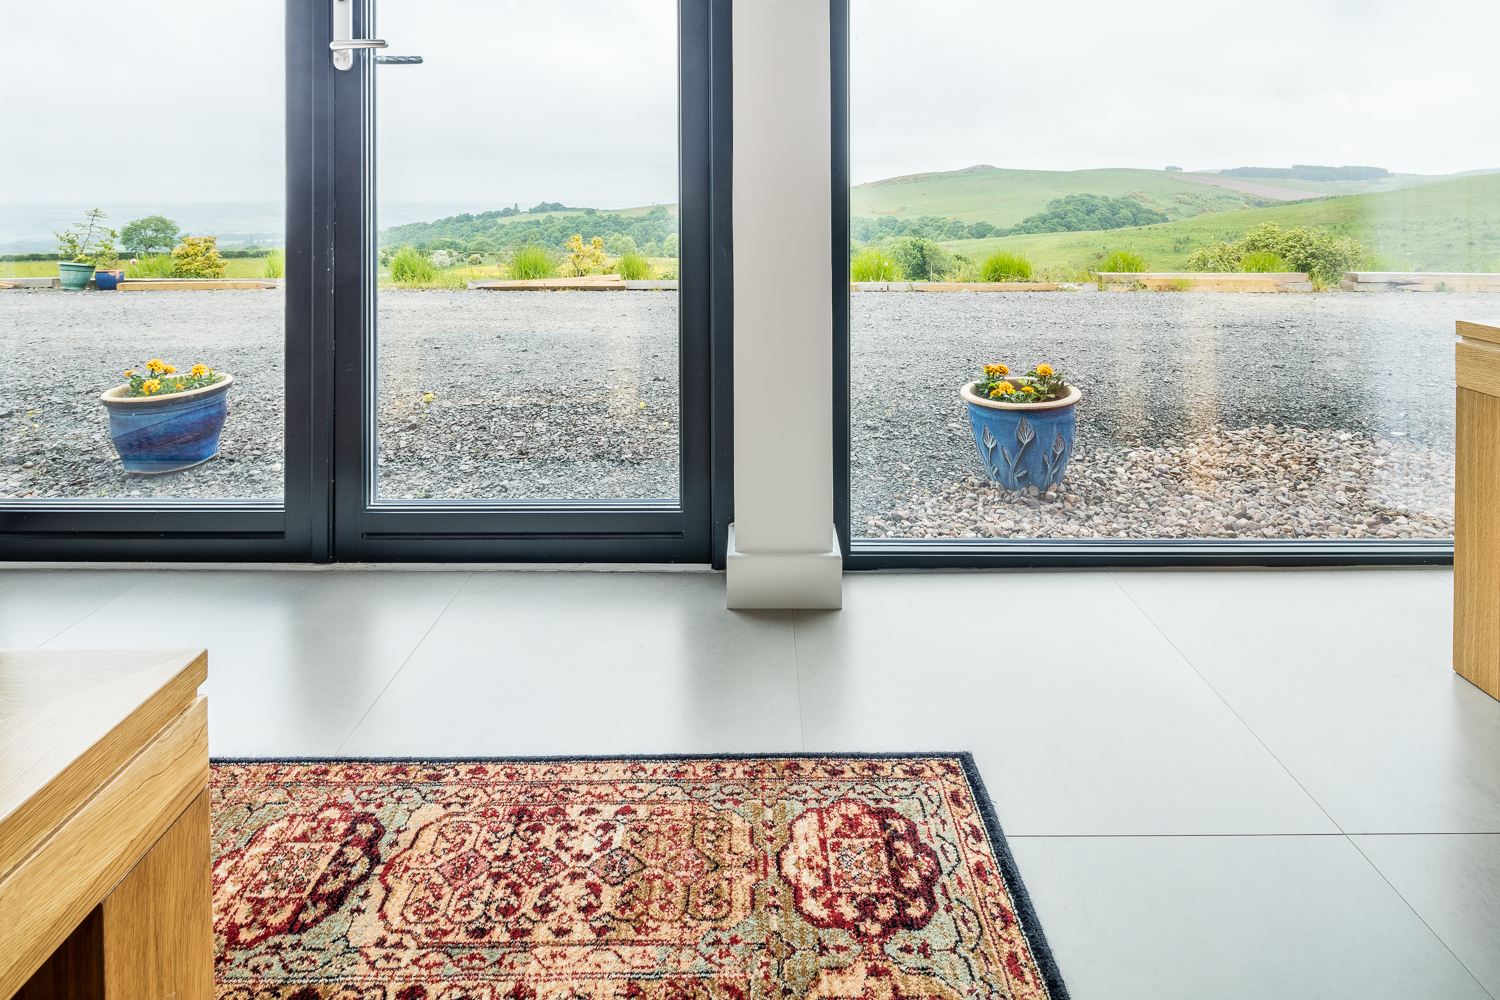 Underfloor heating allows for large areas of floor to ceiling glazing to capture light and take in the beautiful Perth and Kinross countryside